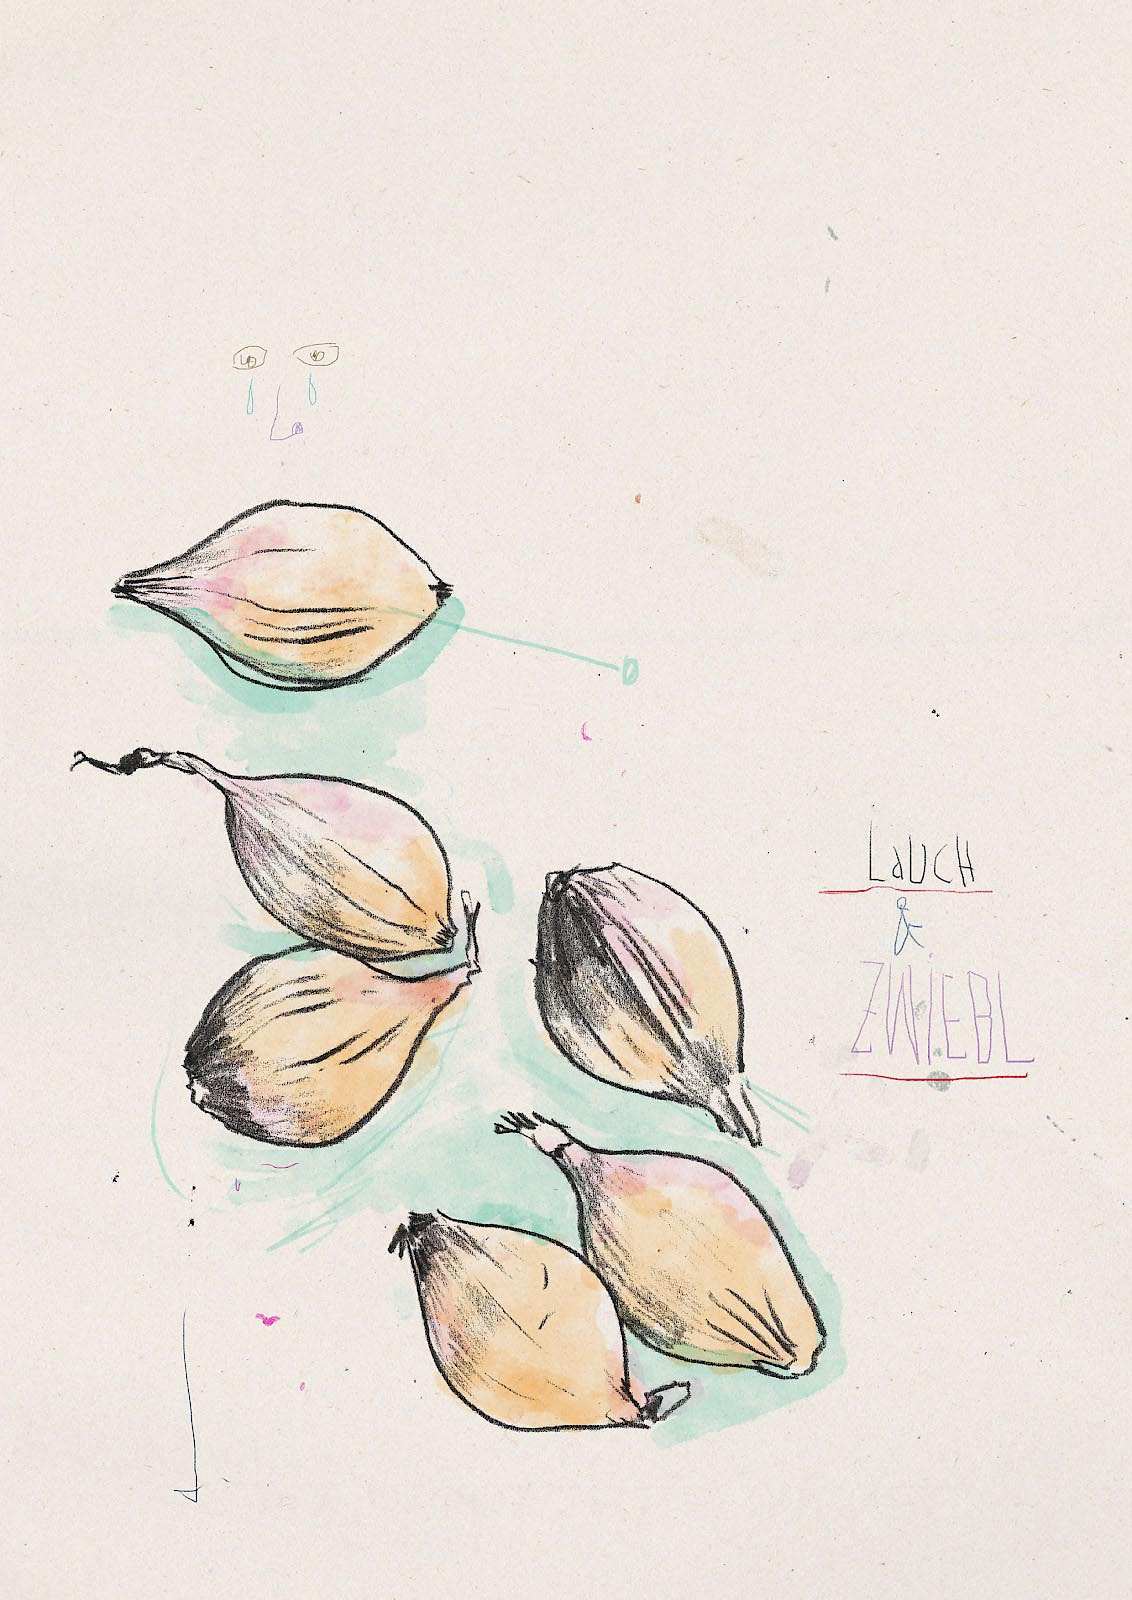 food lauch zwiebel onion leeks scribble sketch sketching shallot